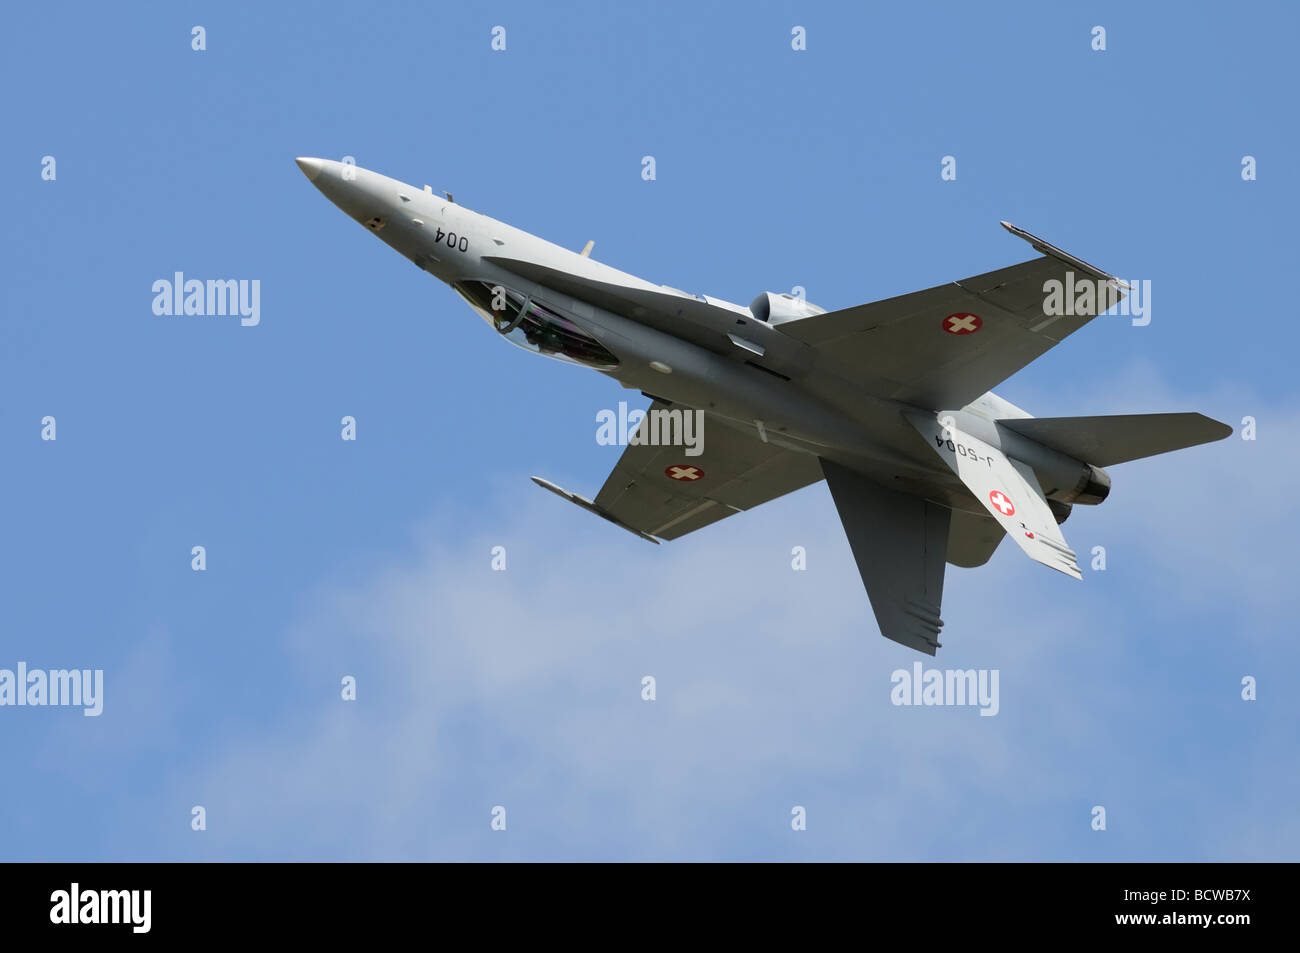 Swiss Air Force McDonnell Douglas F18 Hornet inverted during its display at the 2009 Royal International Air Tattoo - Stock Image